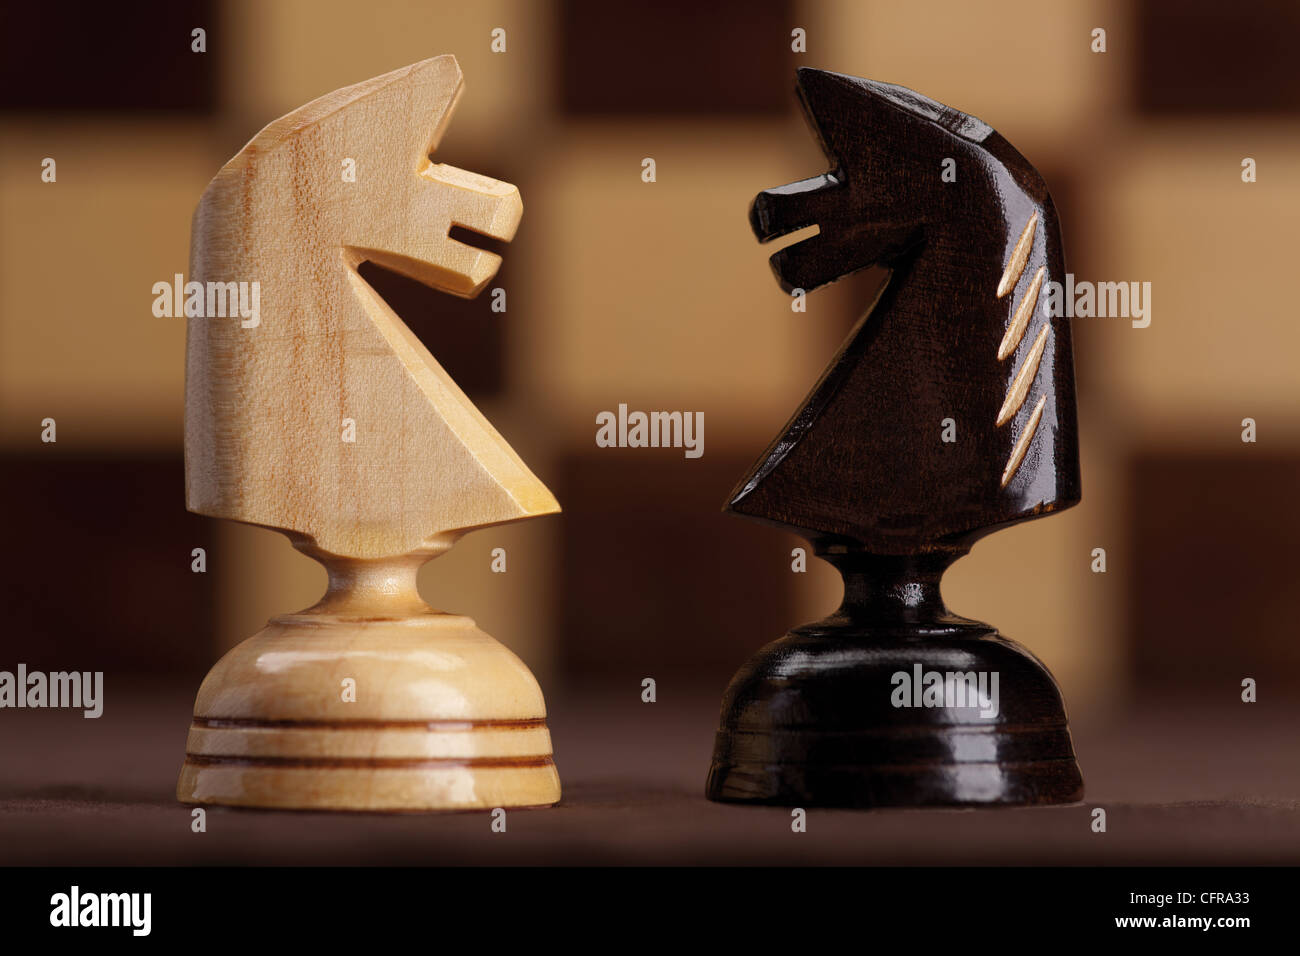 white and black knights on chessboard background - Stock Image